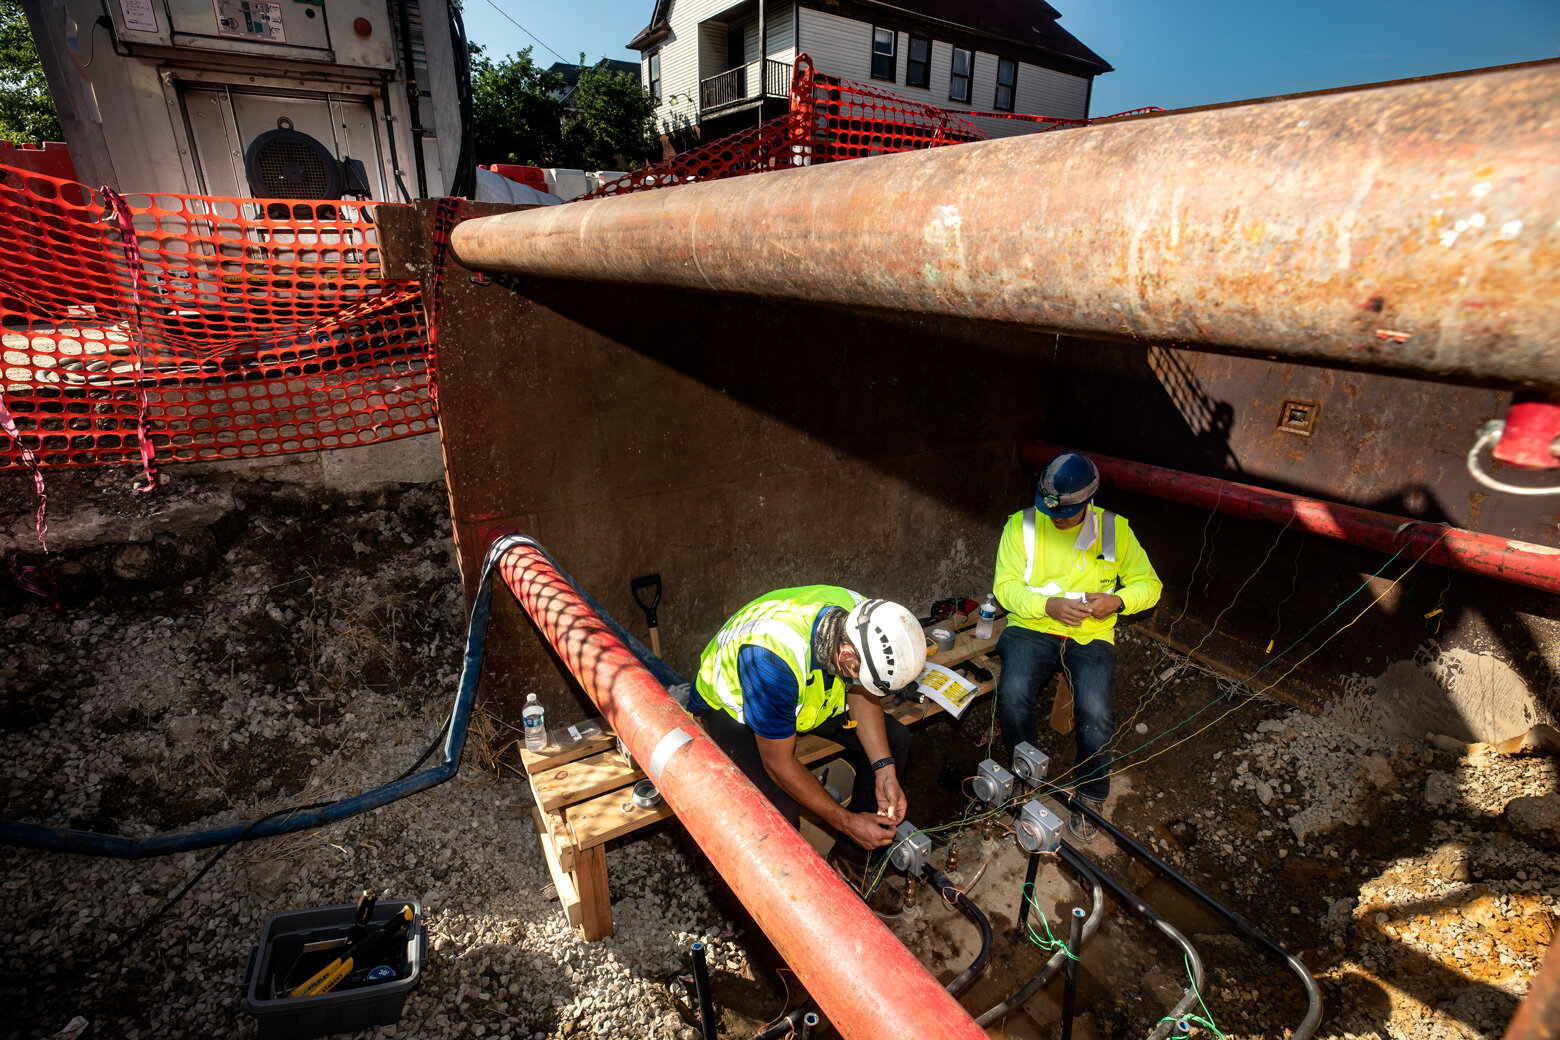 Sensor technology aims to help US cities extend the life of aging pipelines